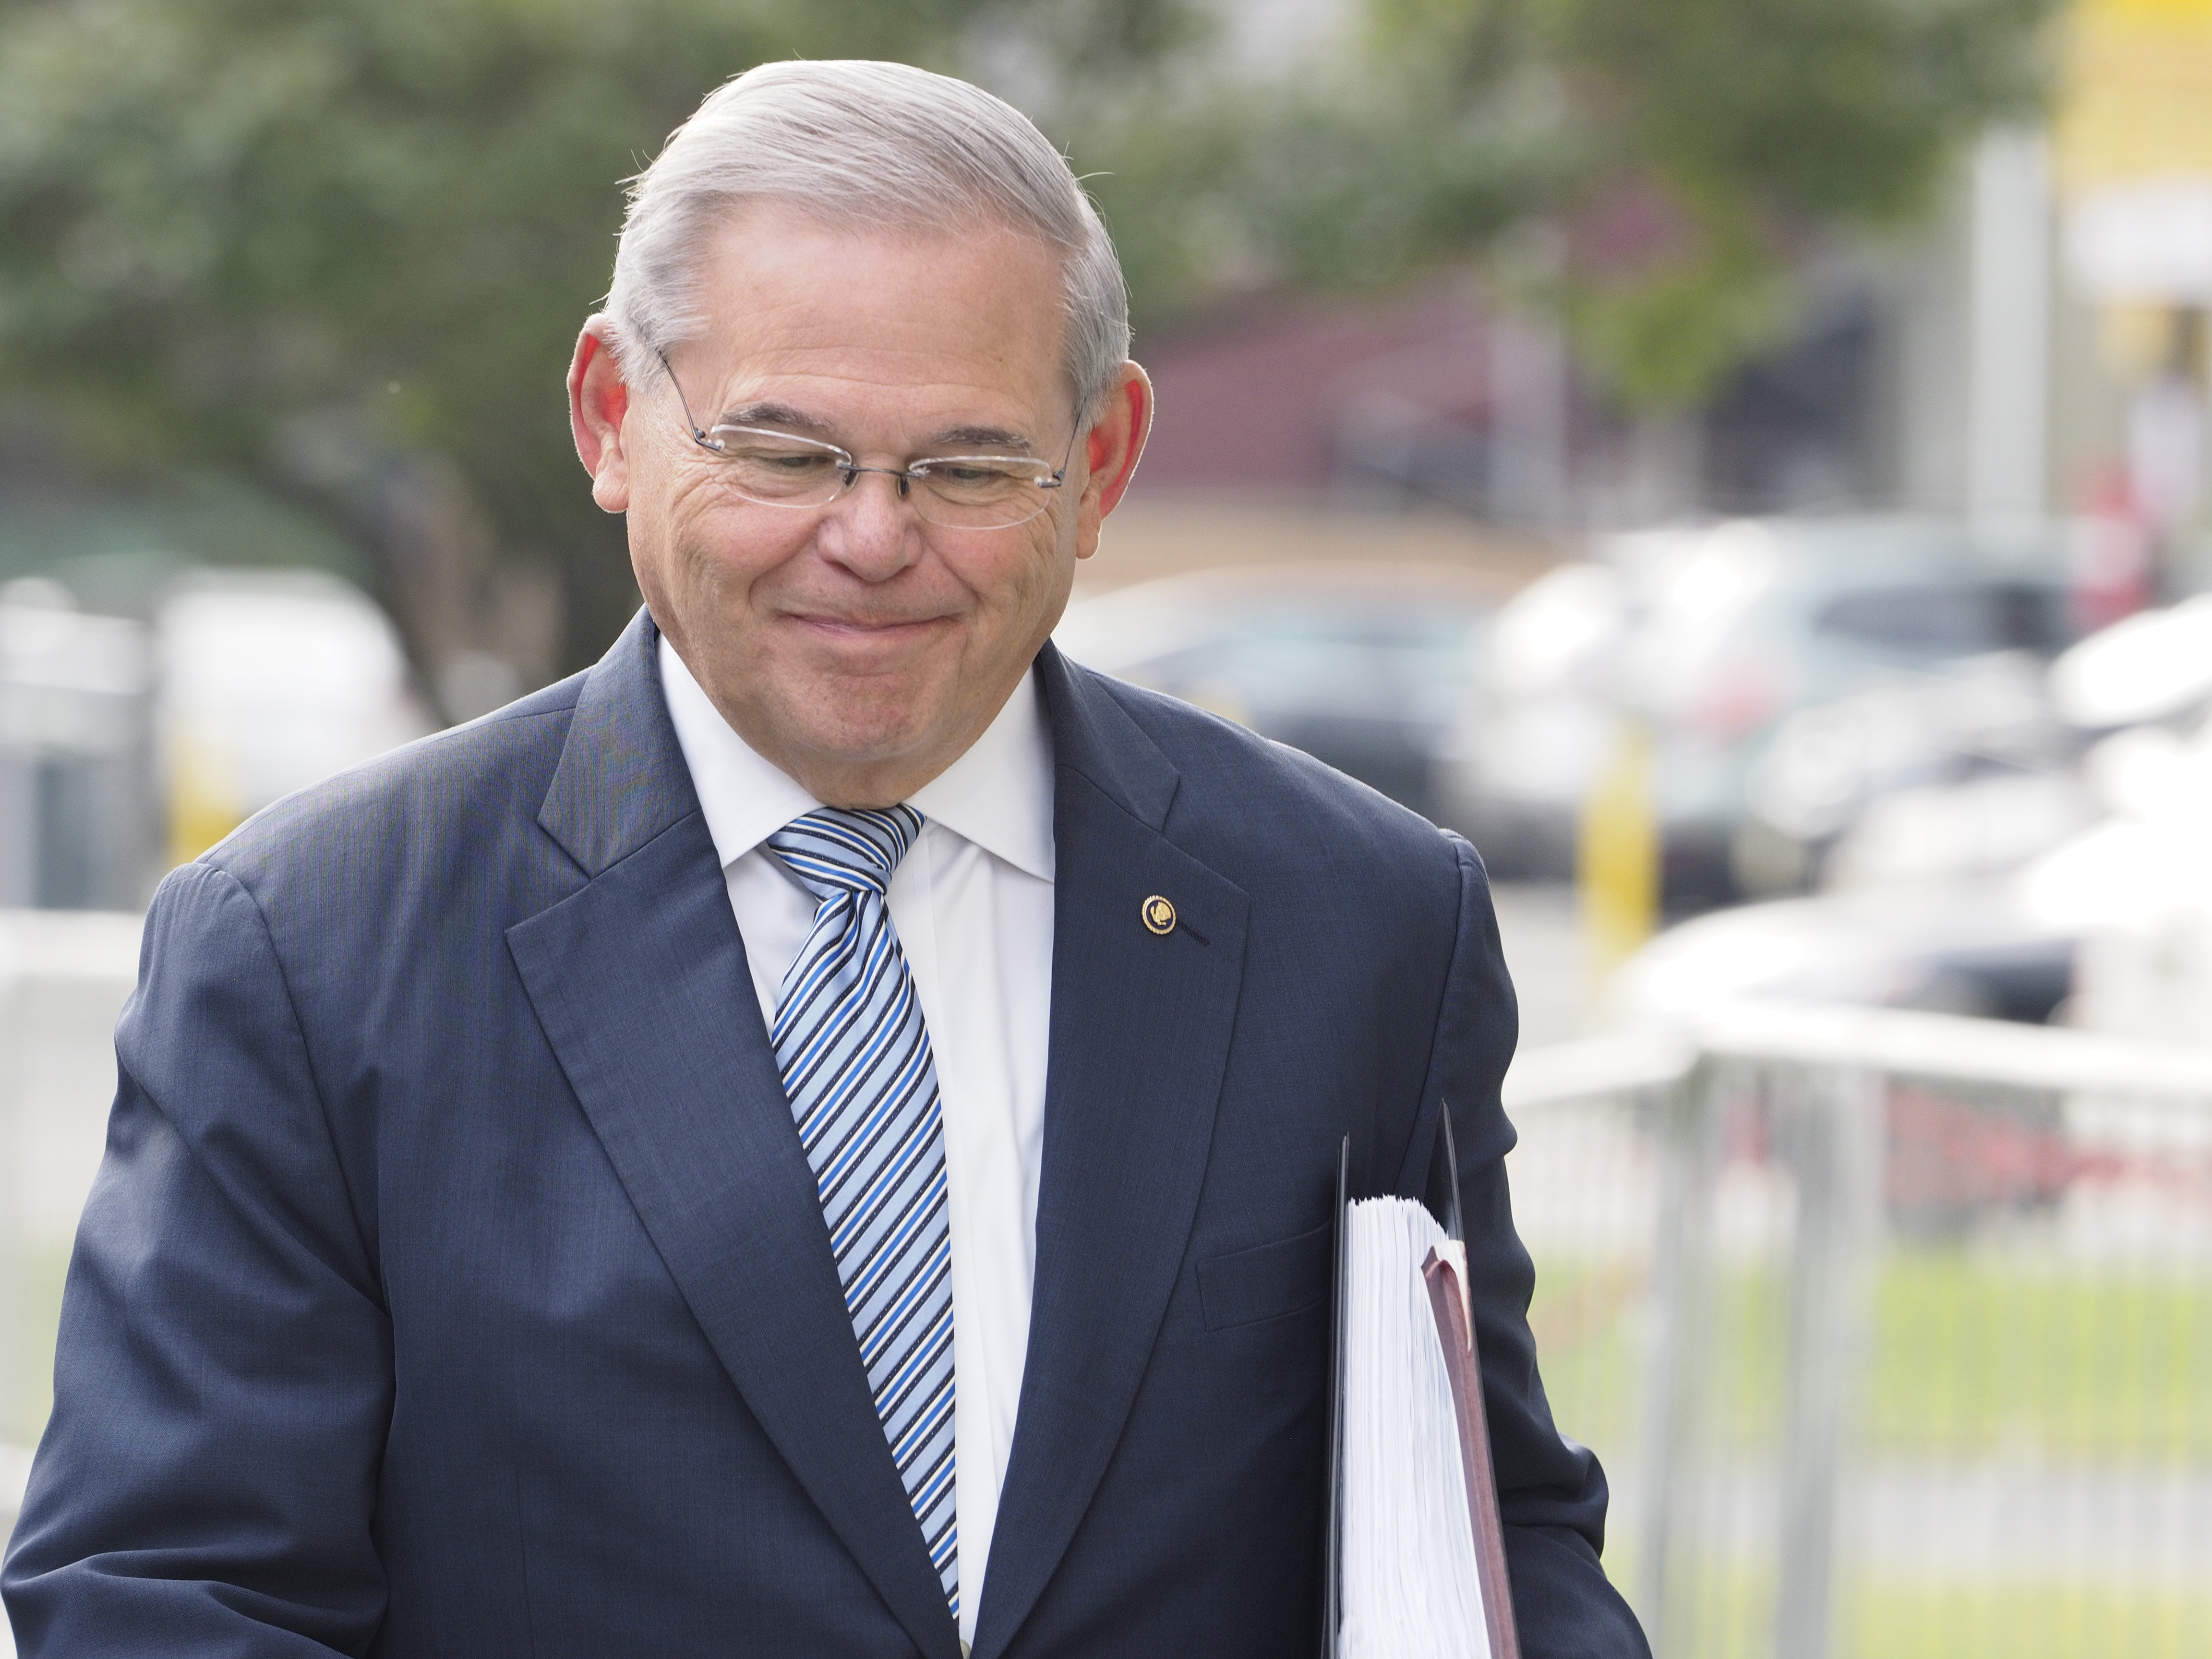 U.S. Sen. Robert Menendez arrives at the federal courthouse in Newark on Tuesday. Menendez prepares to stand trial on federal corruption charges as jury selection begins. August 22, 2017 (Patti Sapone | NJ Advance Media for NJ.com).